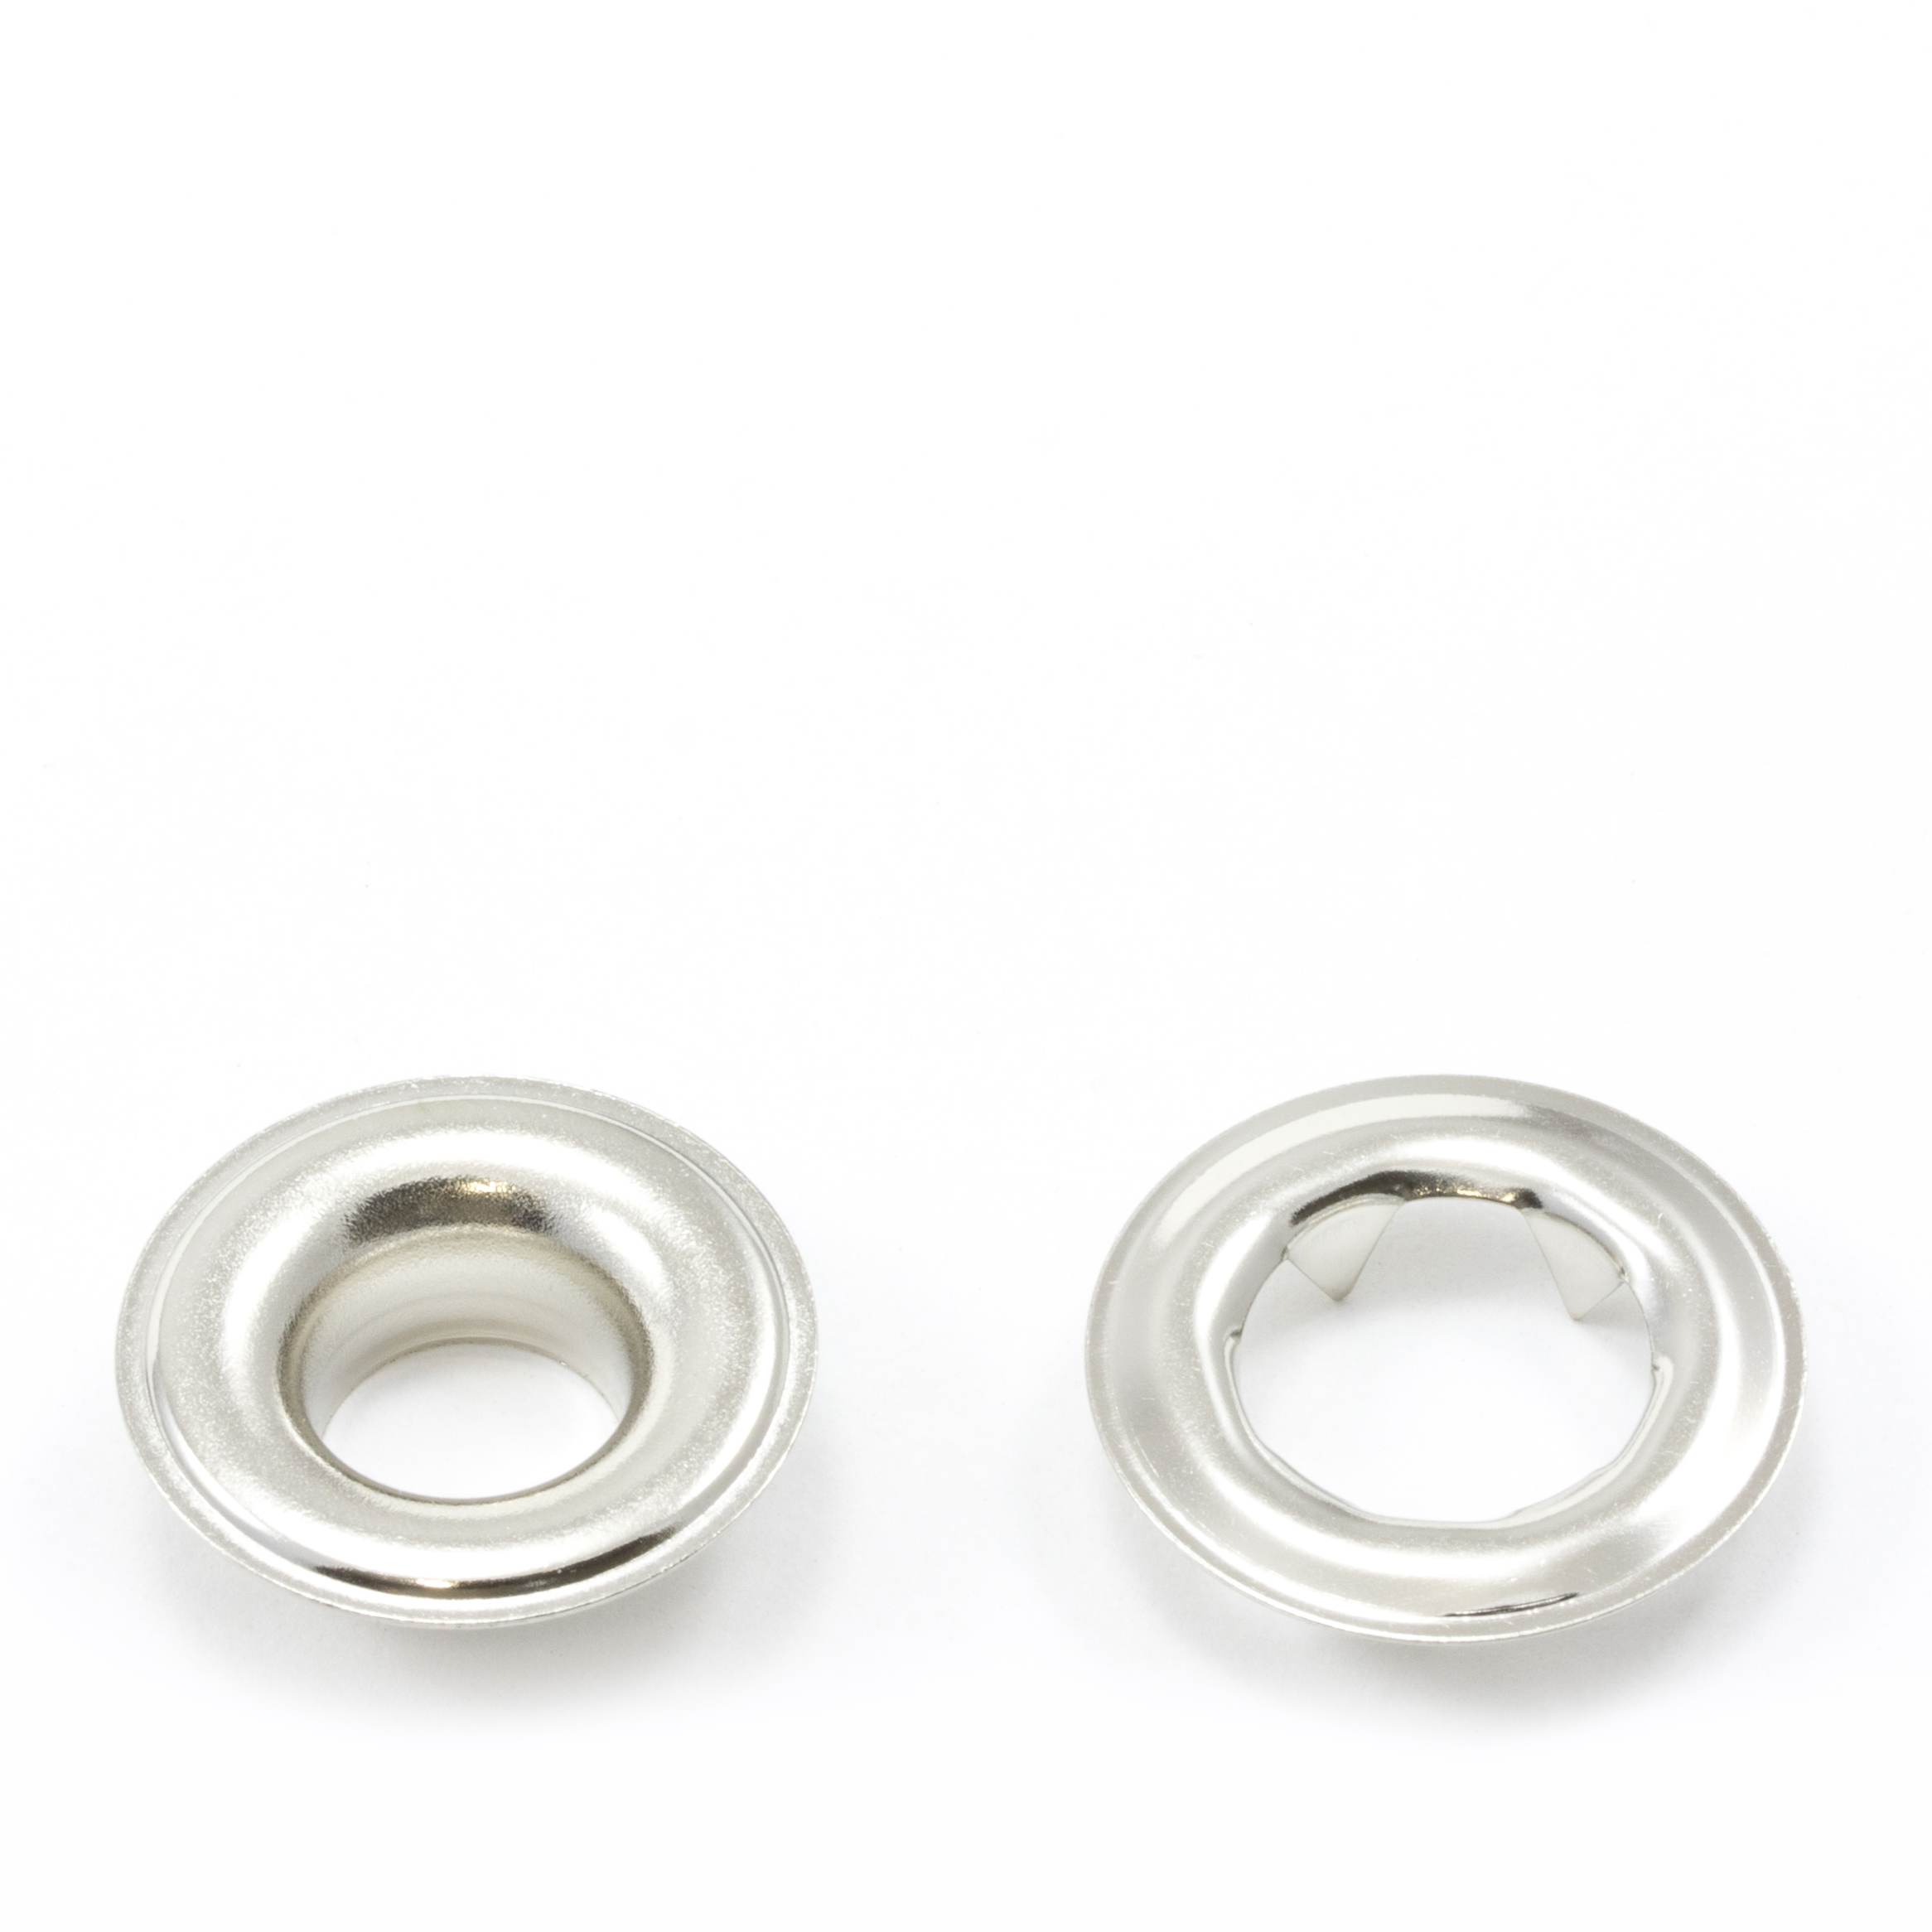 Thumbnail Grommet with Tooth Washer #2 Brass Nickel Plated 3/8 1